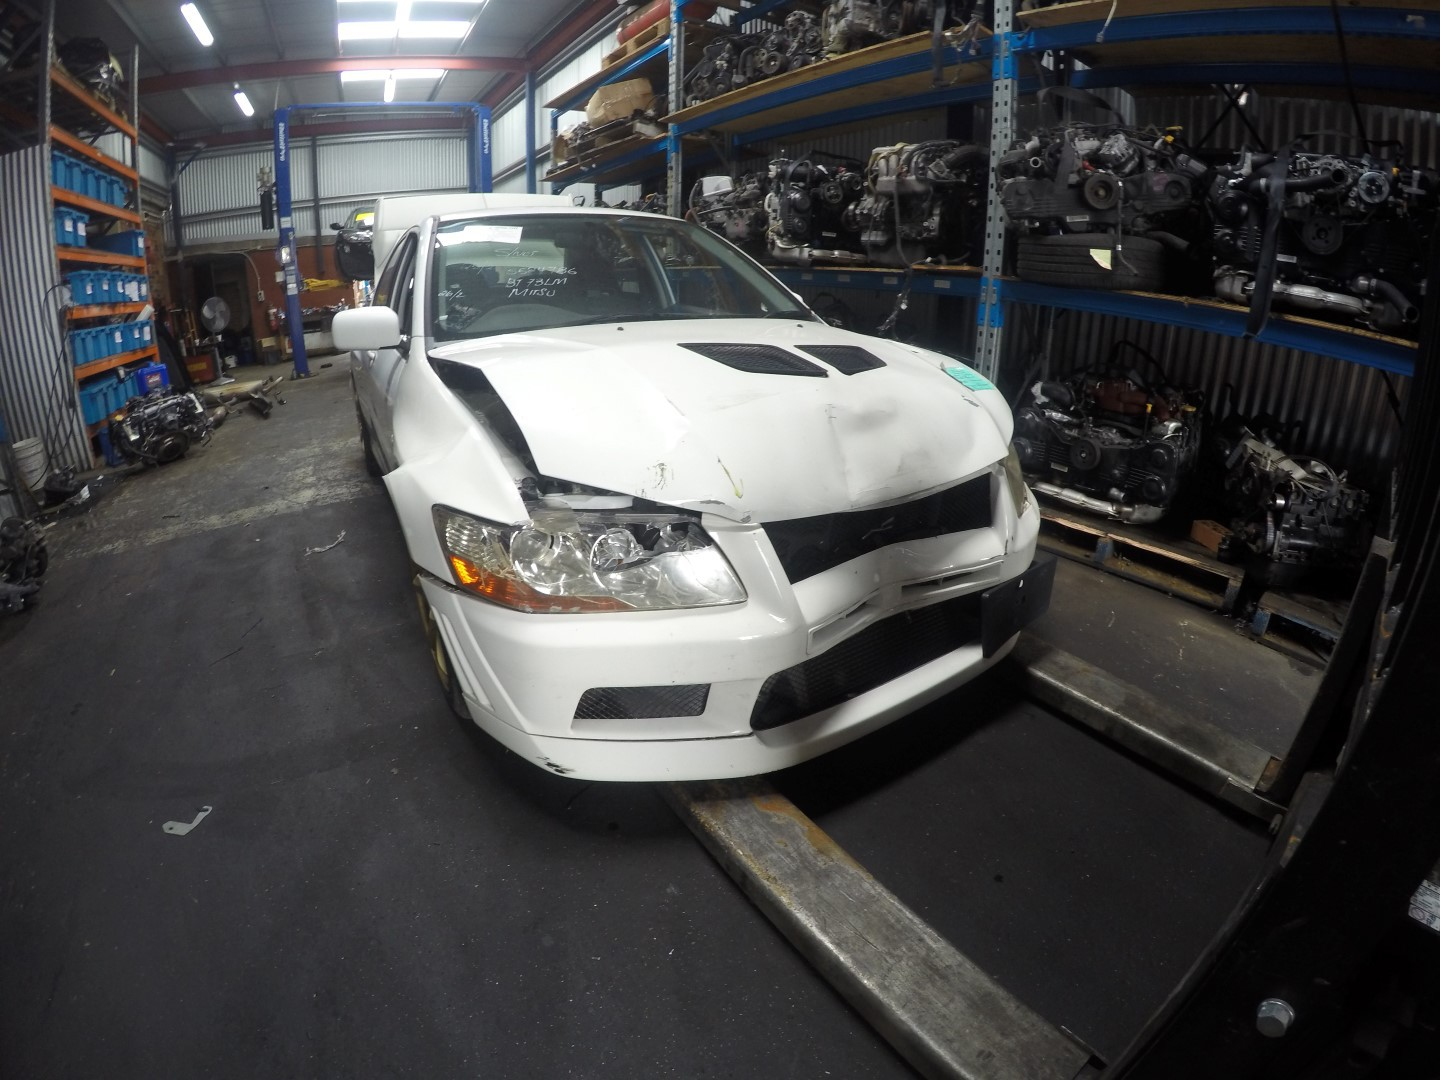 Mitsubishi Wrecking EVO Evolution 7 4G63 Engine Gearbox Transfer AYC